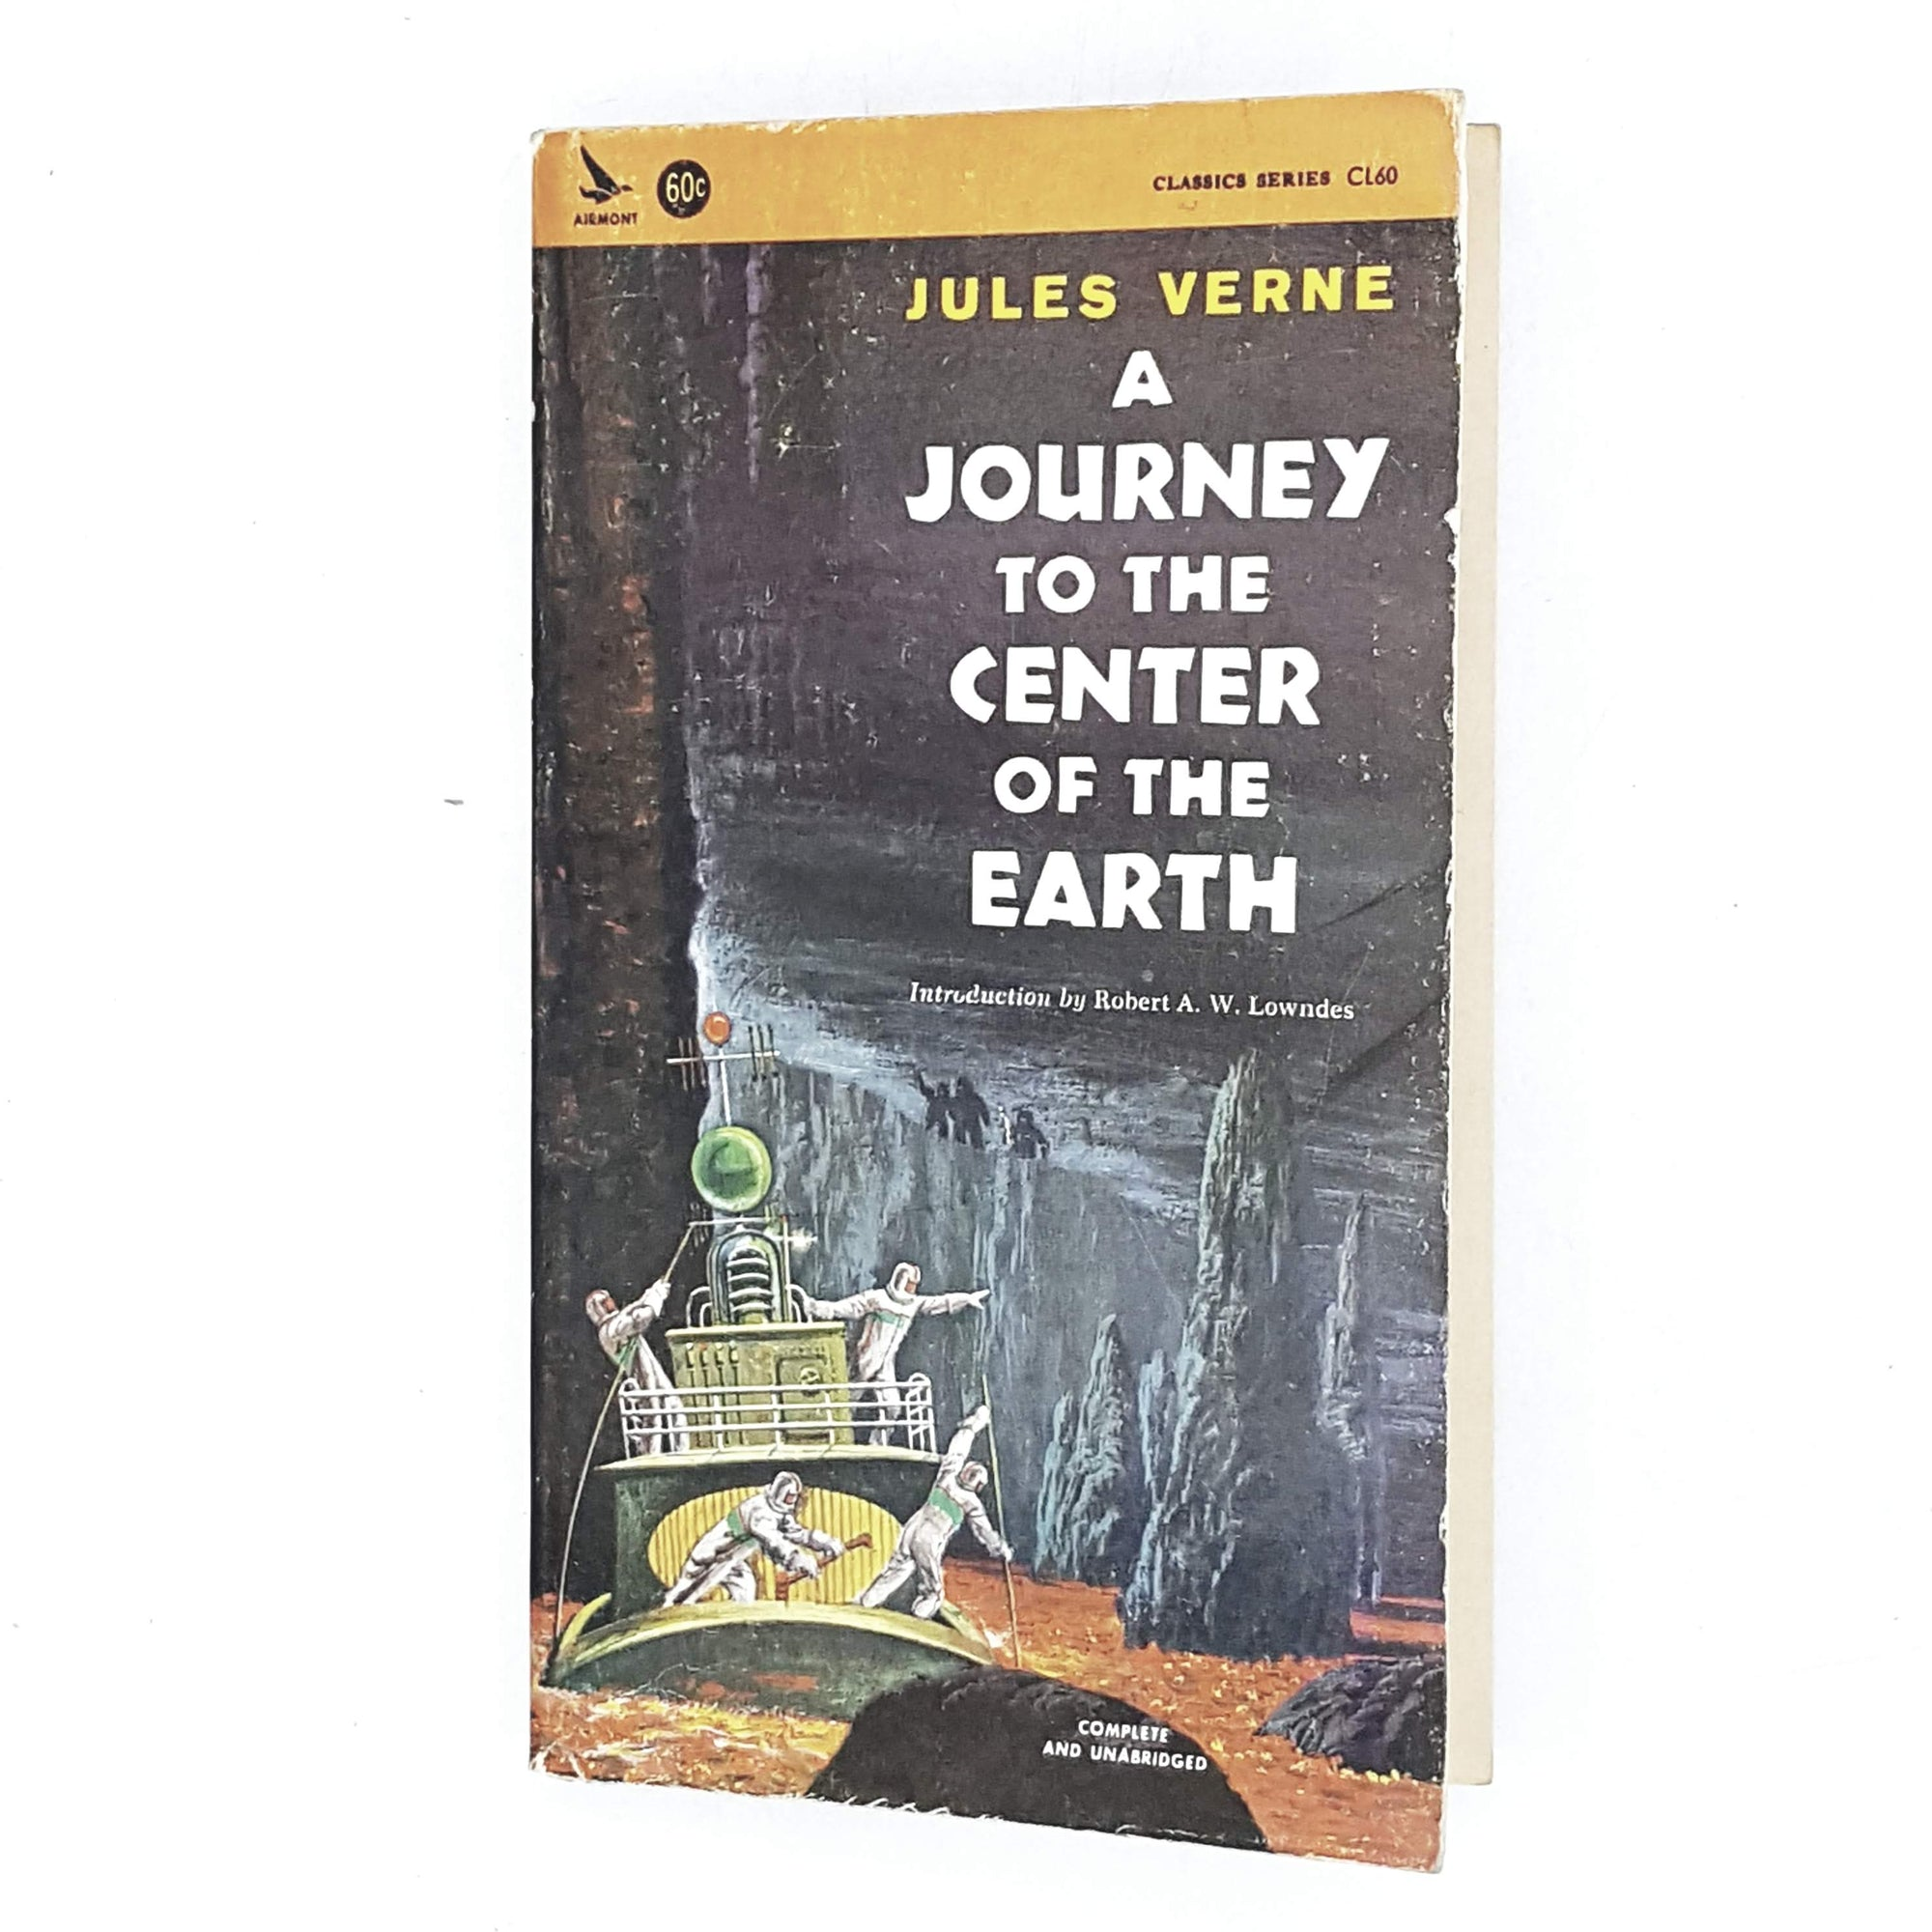 jules-verne-vintage-journey-center-earth